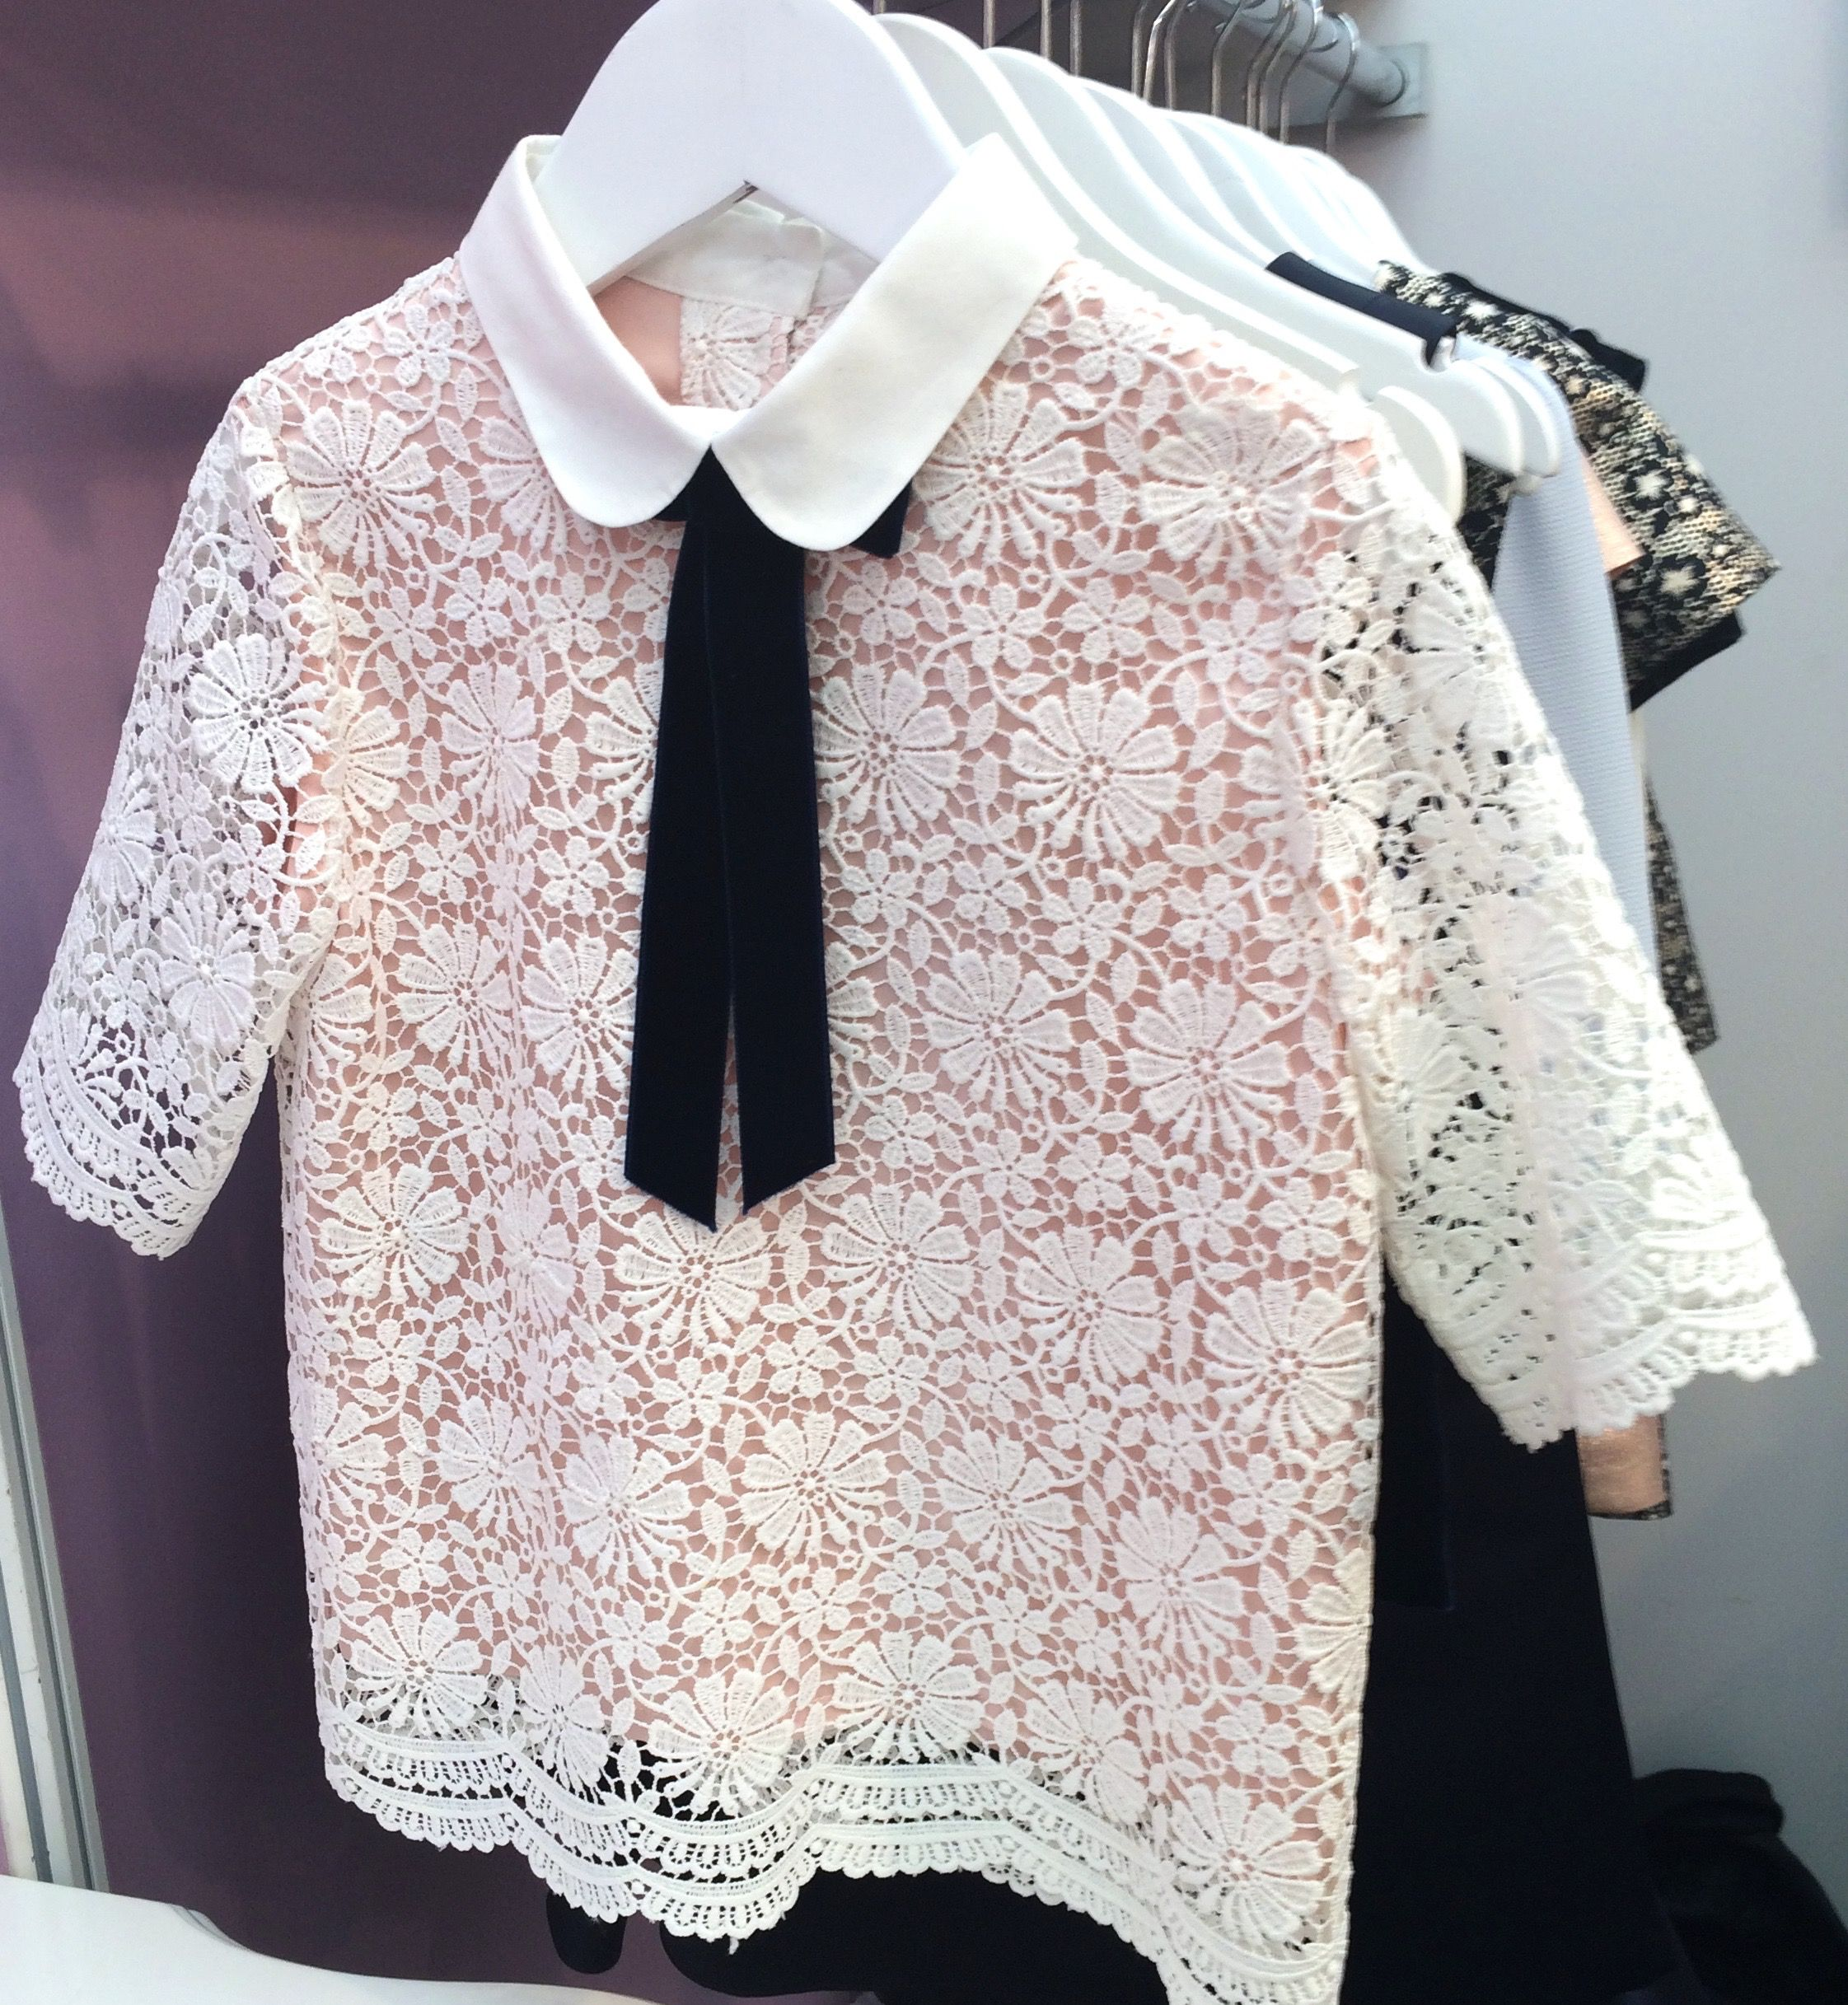 Chic lace top by Oh My at Bubble London for fall 2016 kidswear